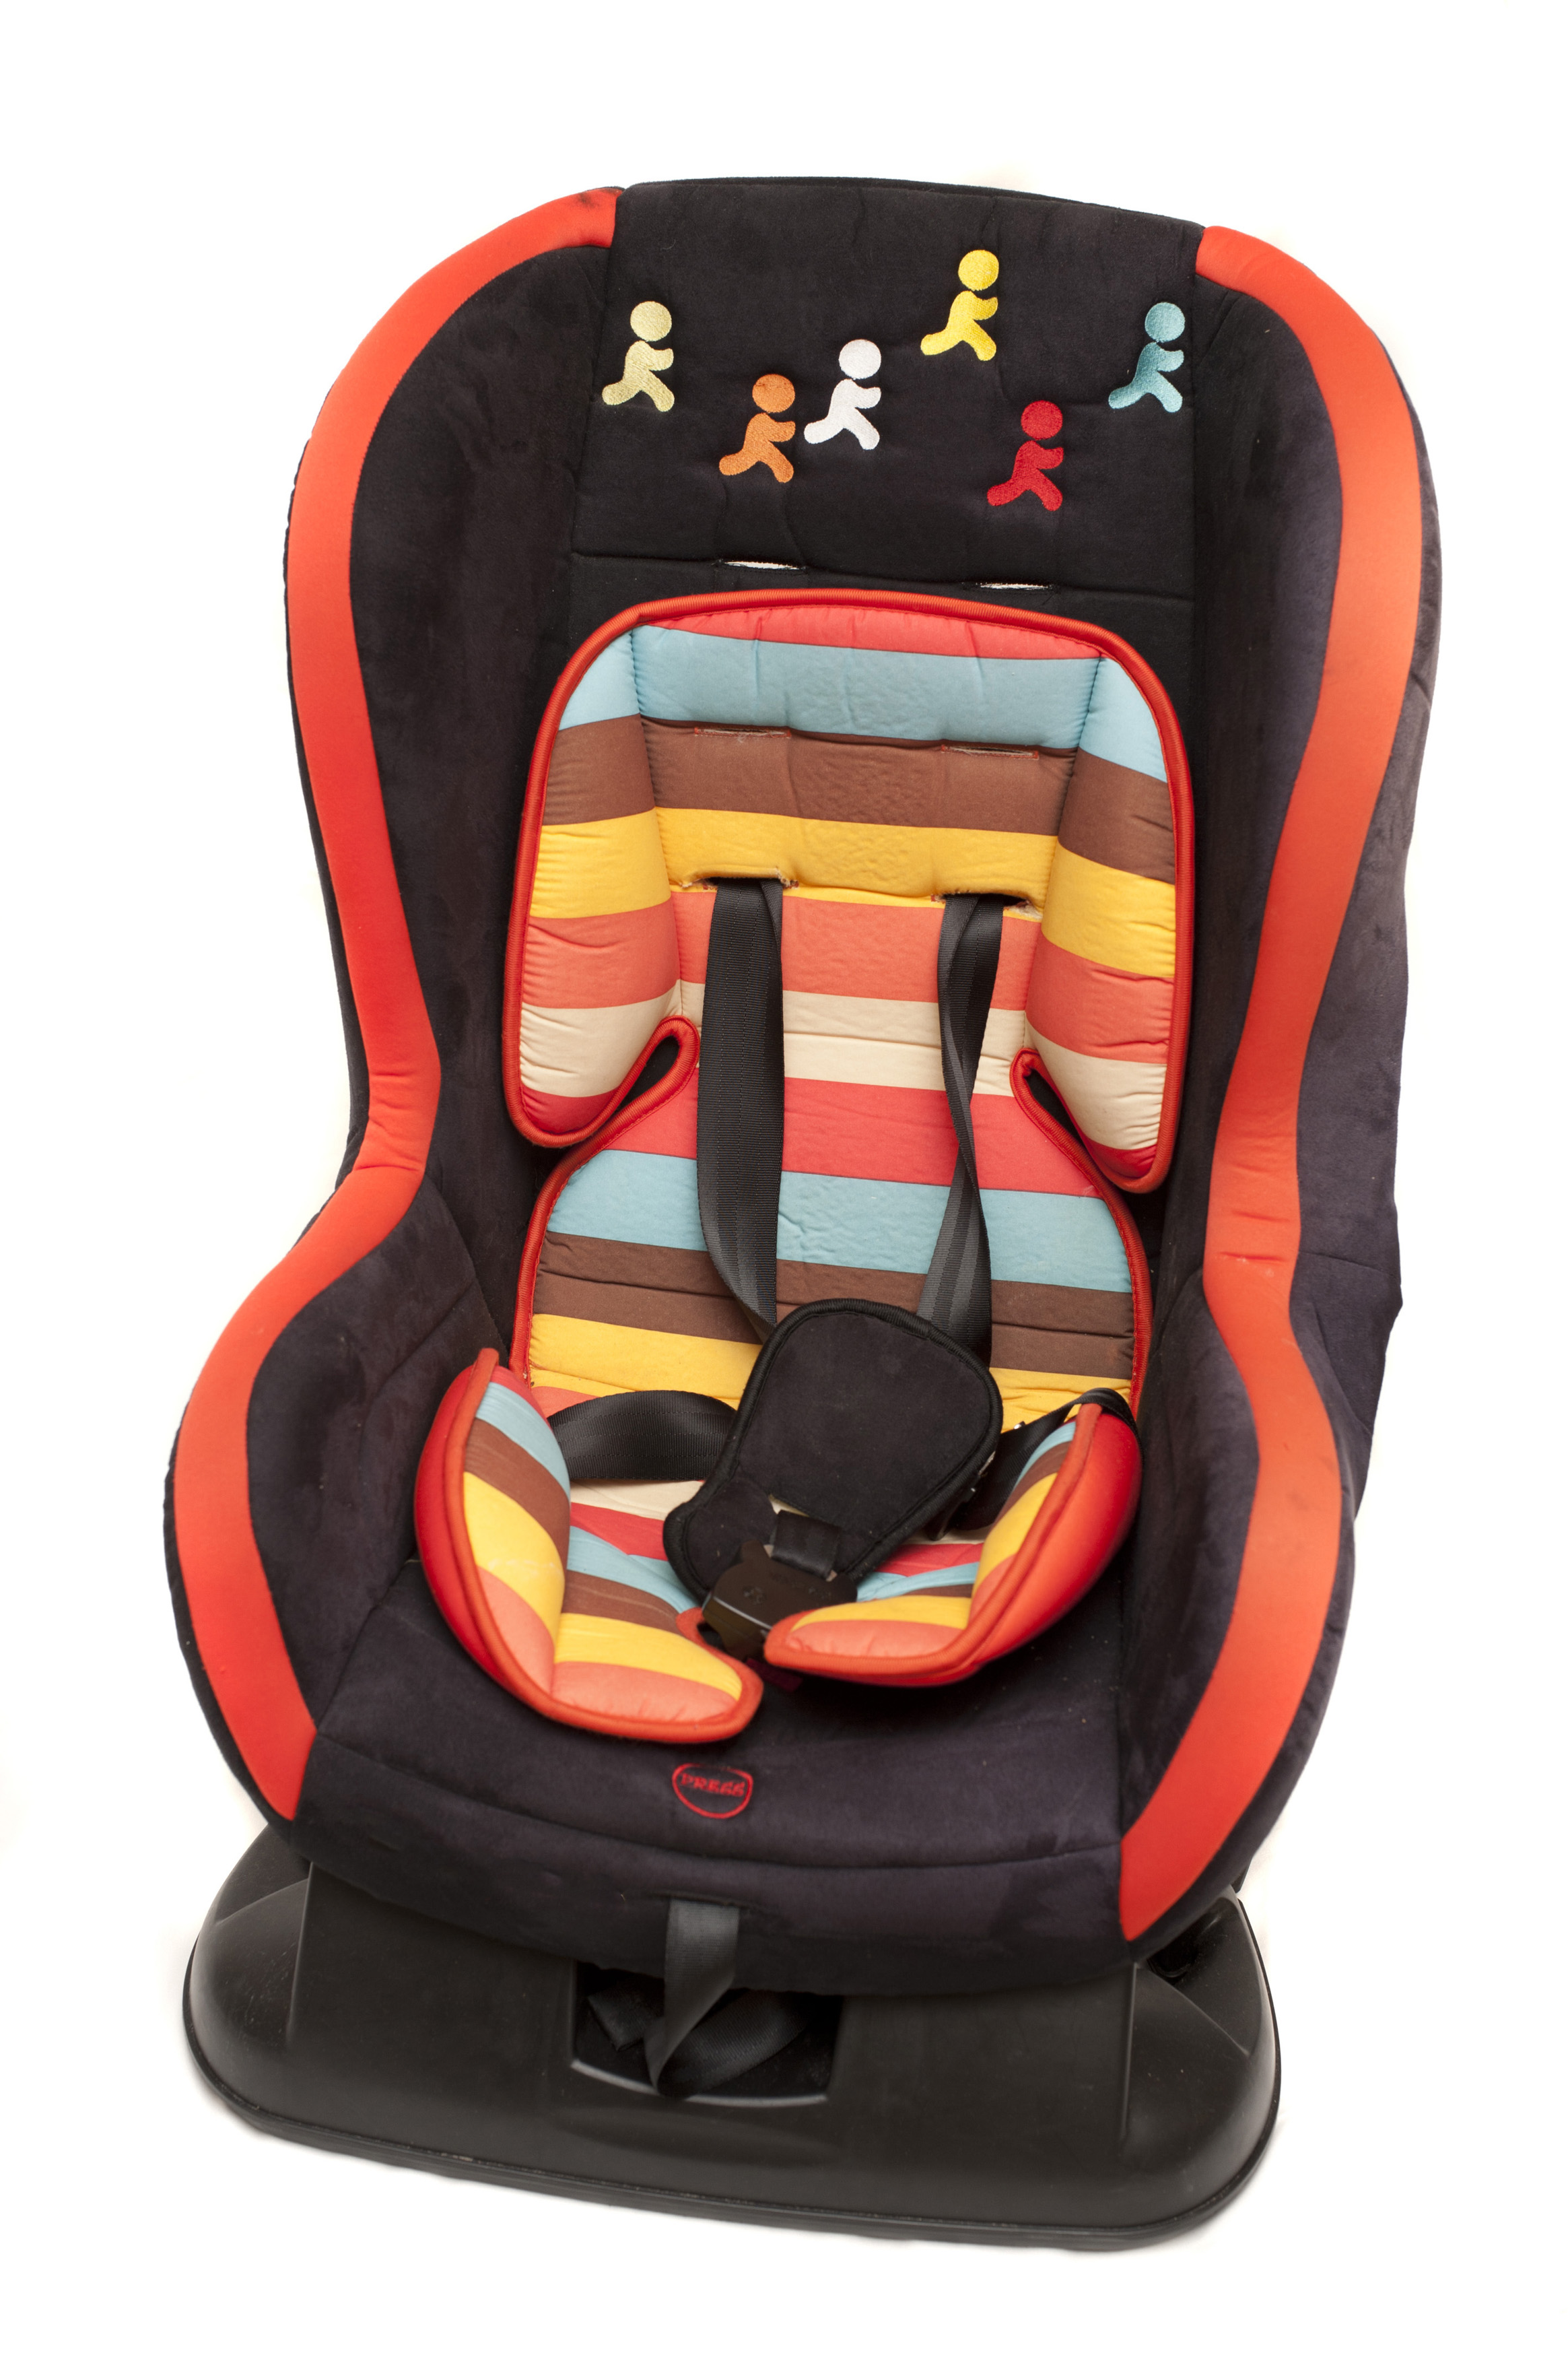 Car Seat Fabric Treatment